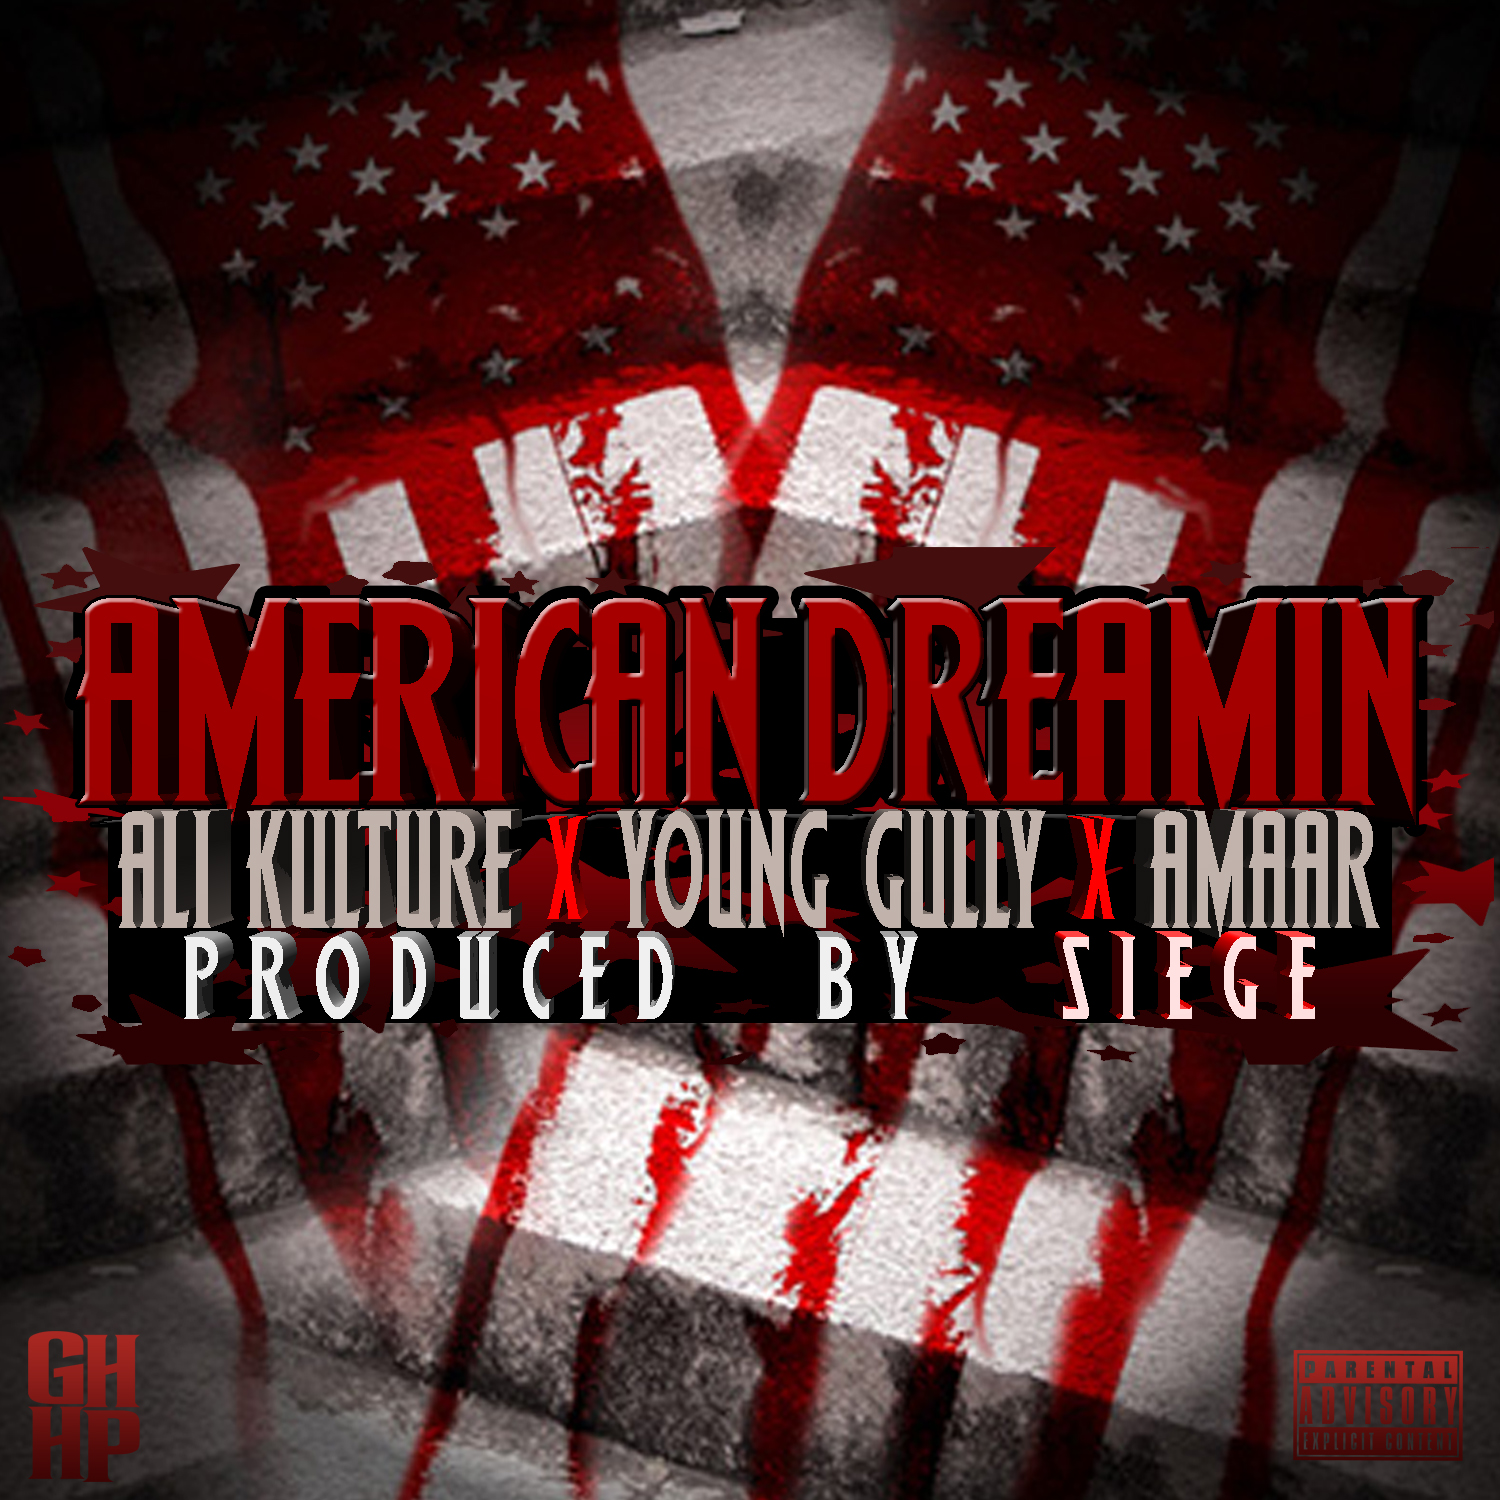 Ali Kulture ft. Young Gully & Amaar - American Dreamin (Produced by Seige) [Thizzler.com]